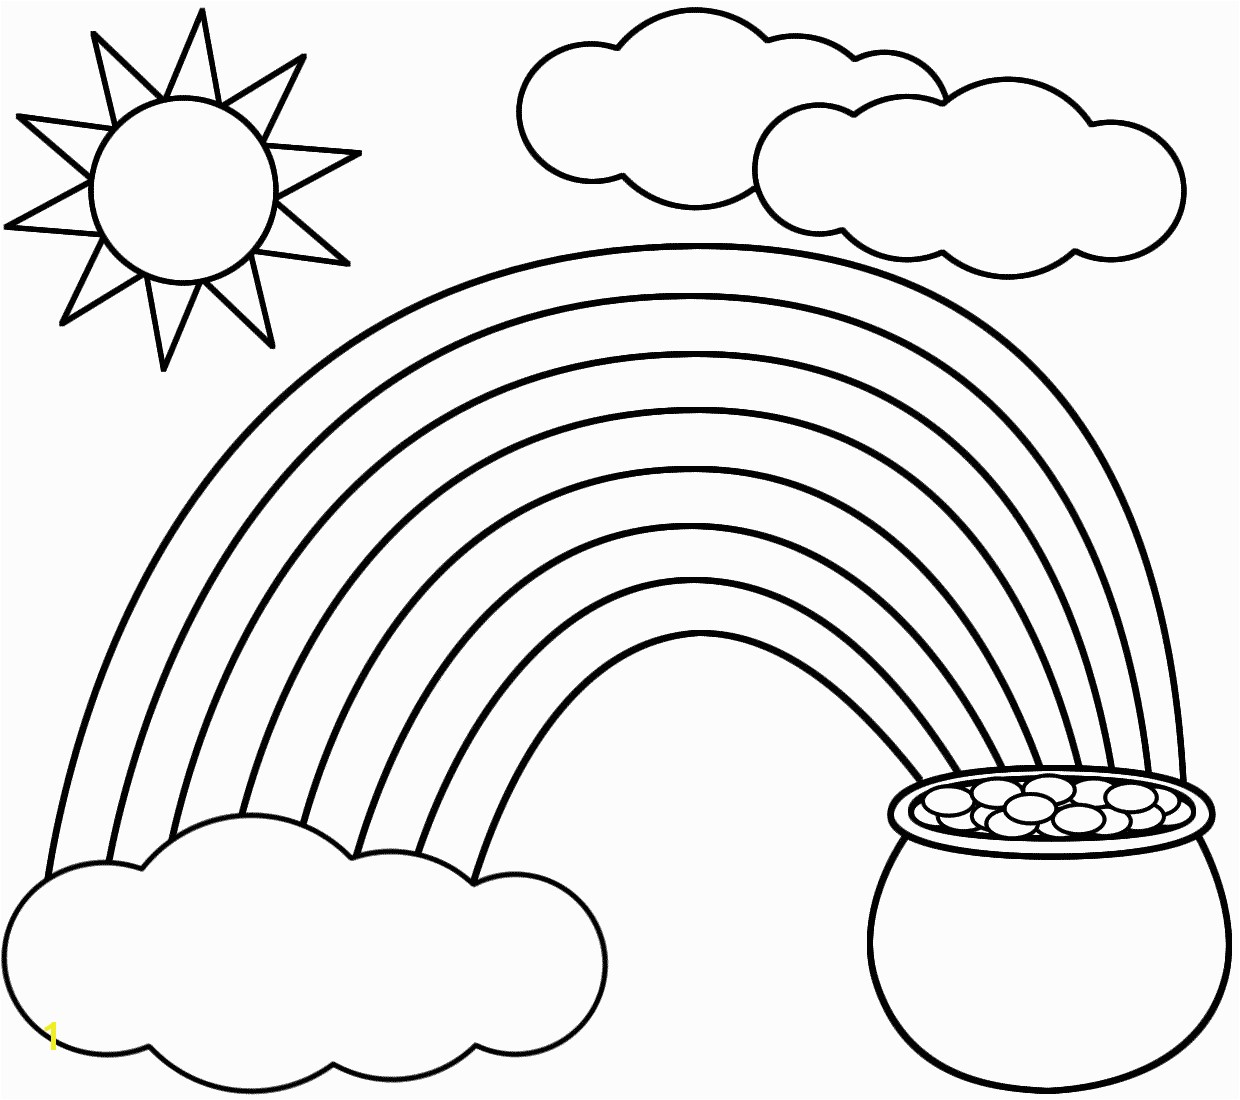 Rainbow Coloring Page Kids dream of rainbows with pots of gold at the end Free printable